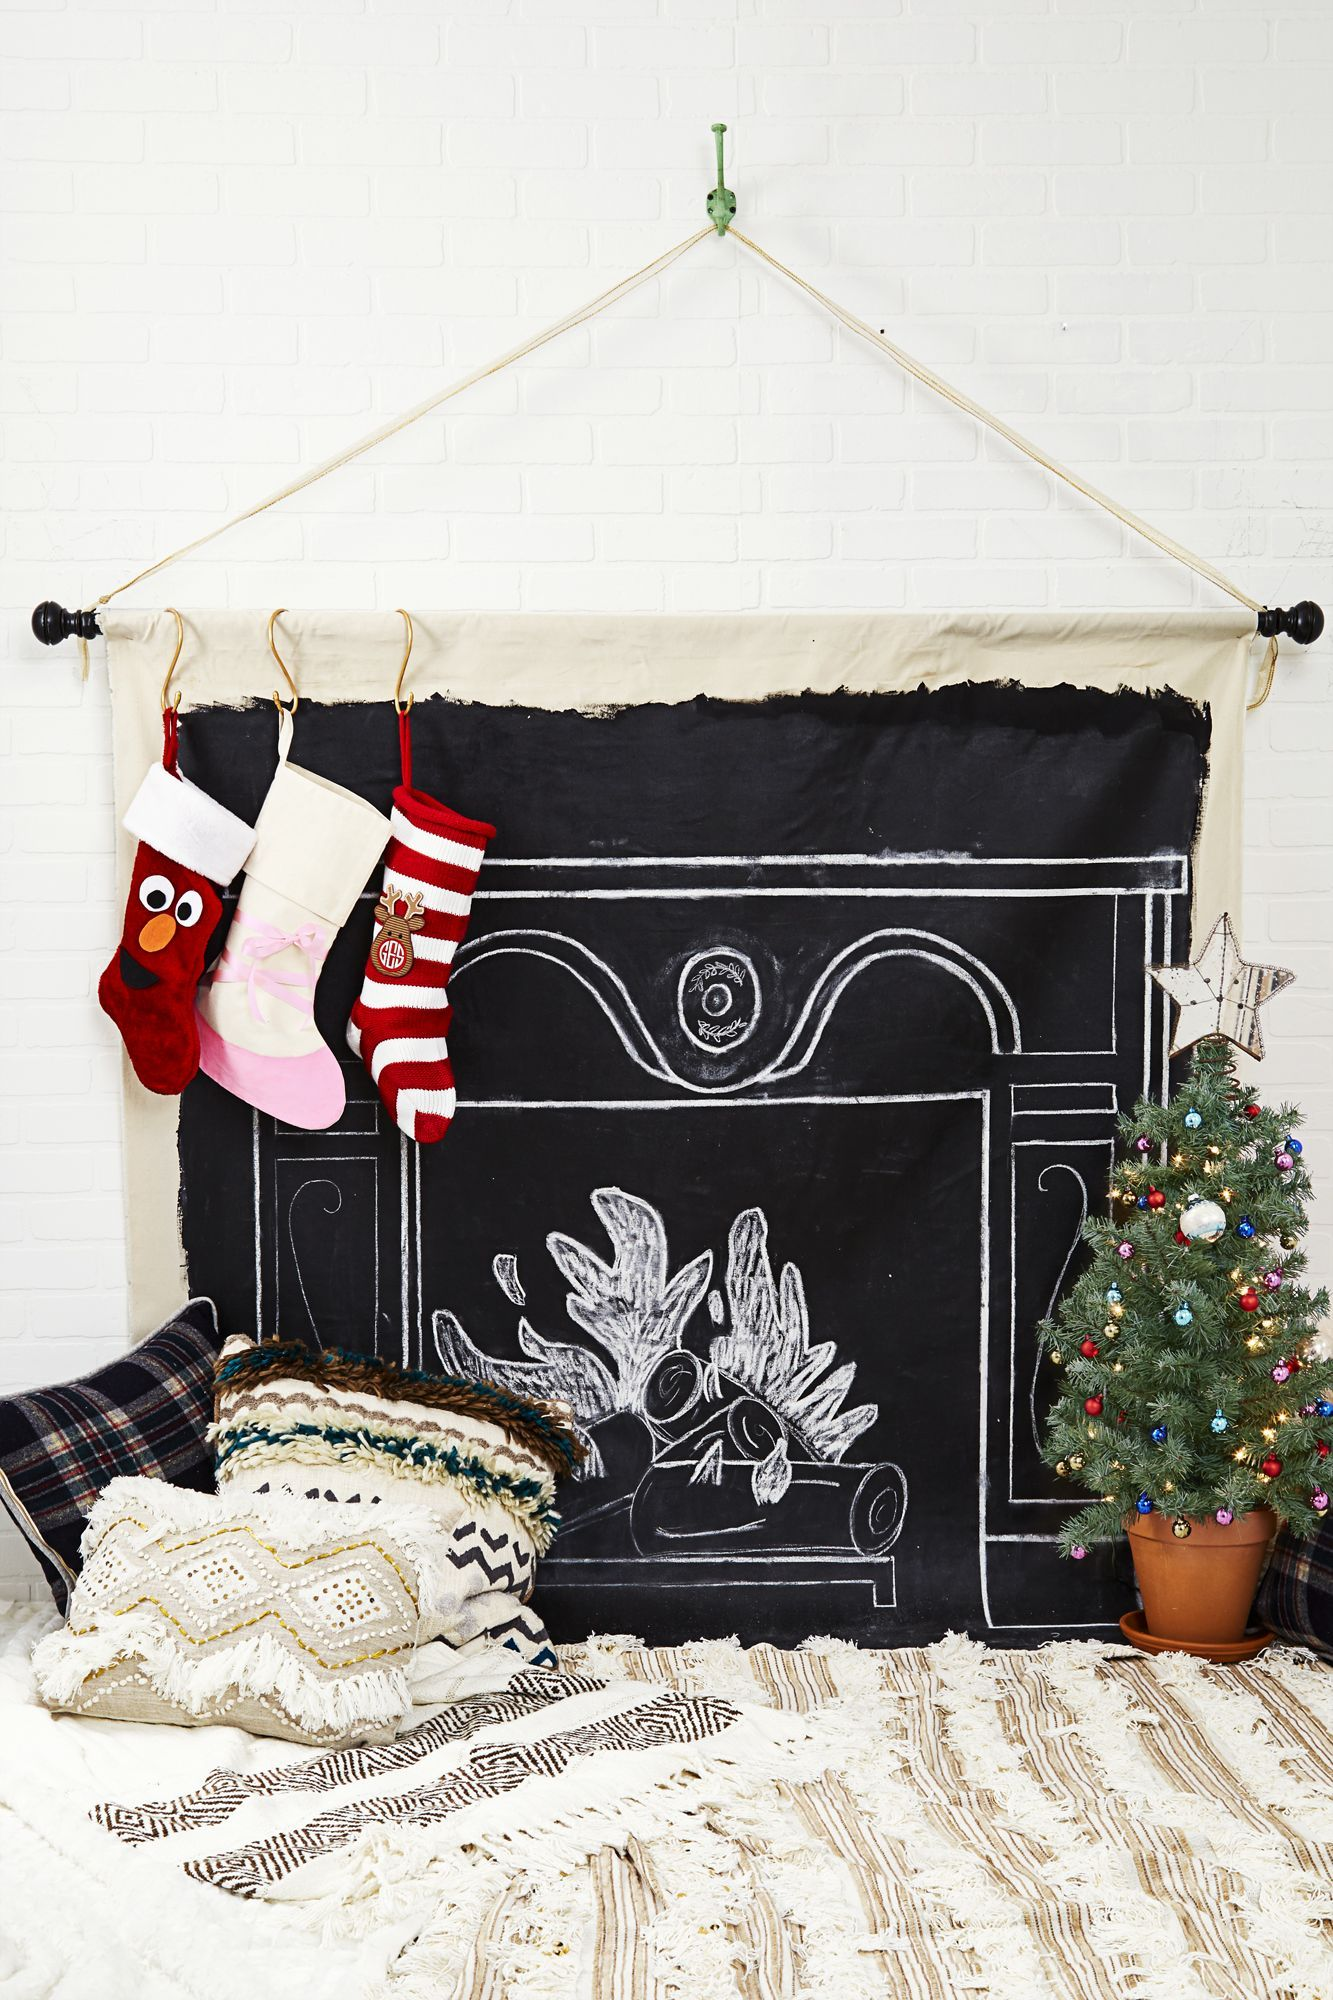 Turn Your House Into the North Pole With These Christmas Decorating Ideas #smallapartmentchristmasdecor